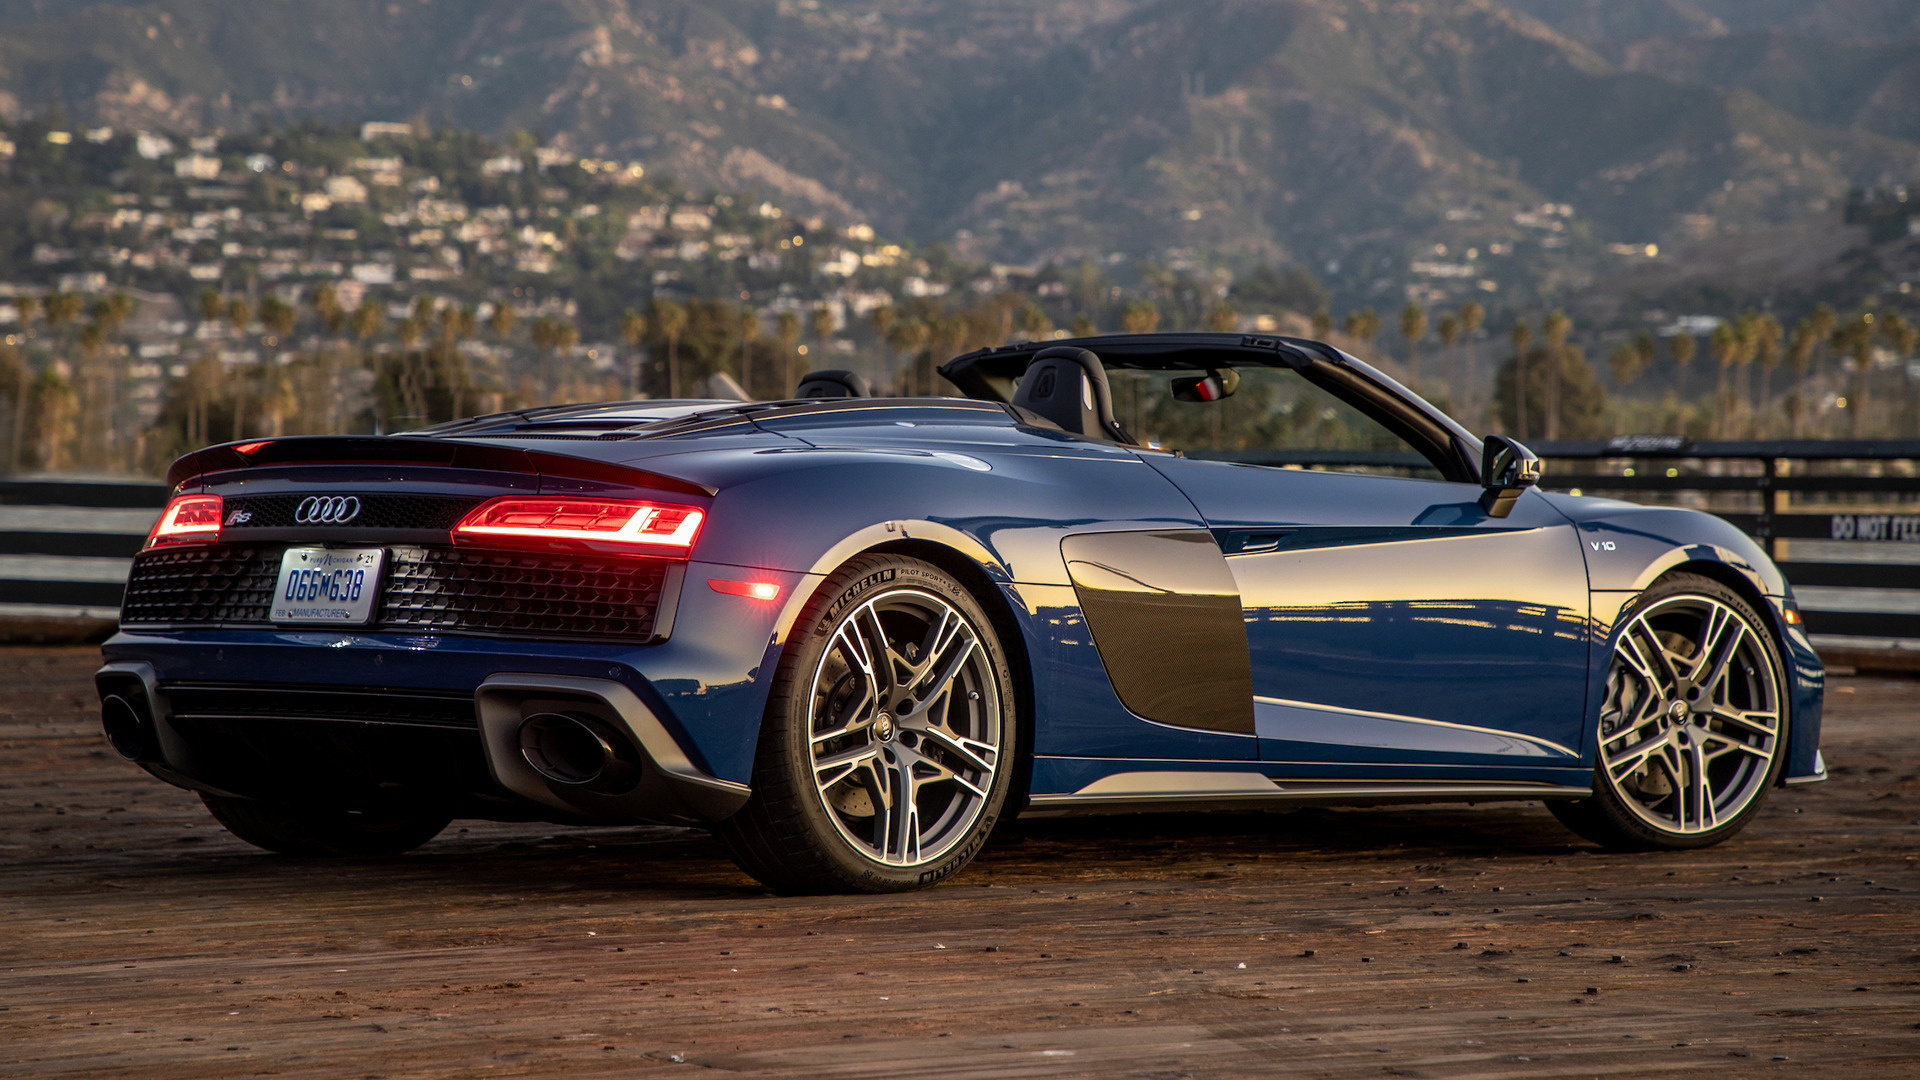 Audi R8 Lms >> 2020 Audi R8 Spyder Performance (US) - Wallpapers and HD ...